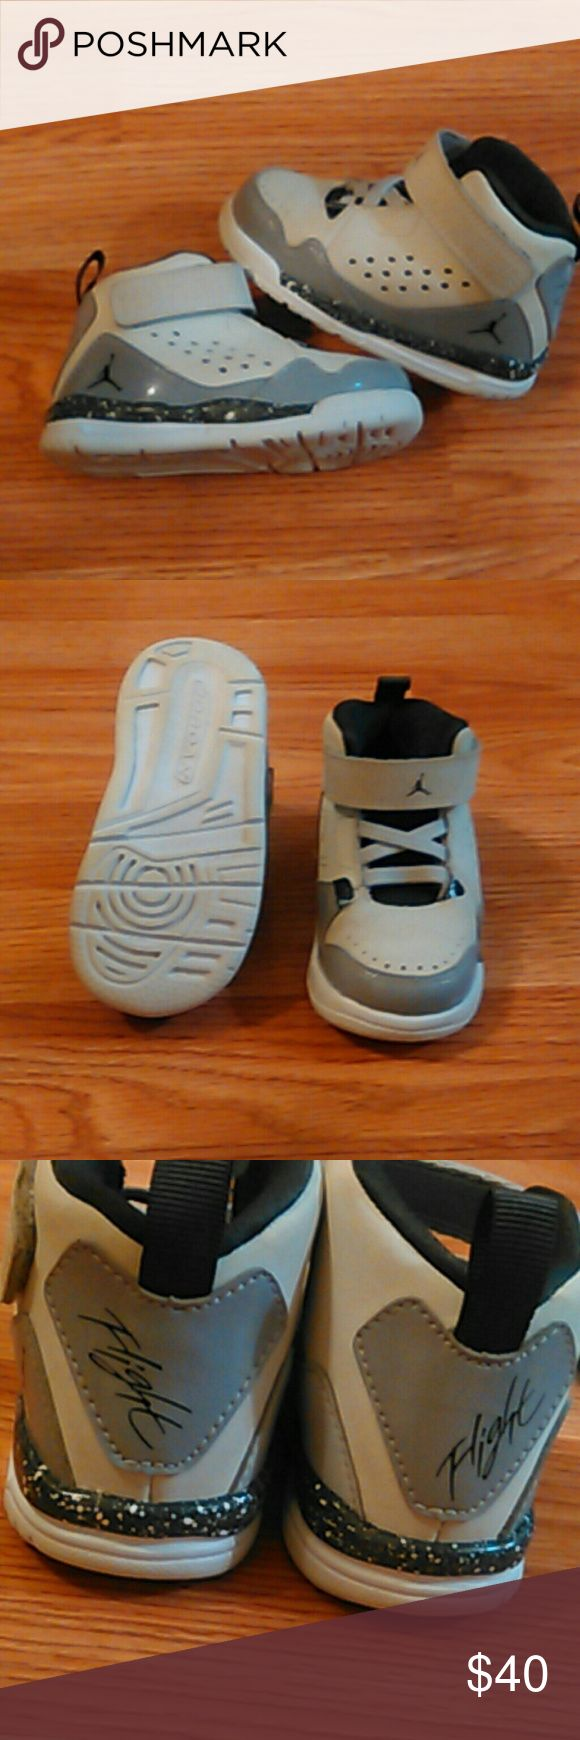 Jordan Flight baby tennis shoes like New These are so adorable!!!Jordan s baby tennis shoes size 5c like new condition white with dark and light shades of grey that will match any outfit. Velcro. Boy or girl could wear!! Jordan Shoes Baby & Walker